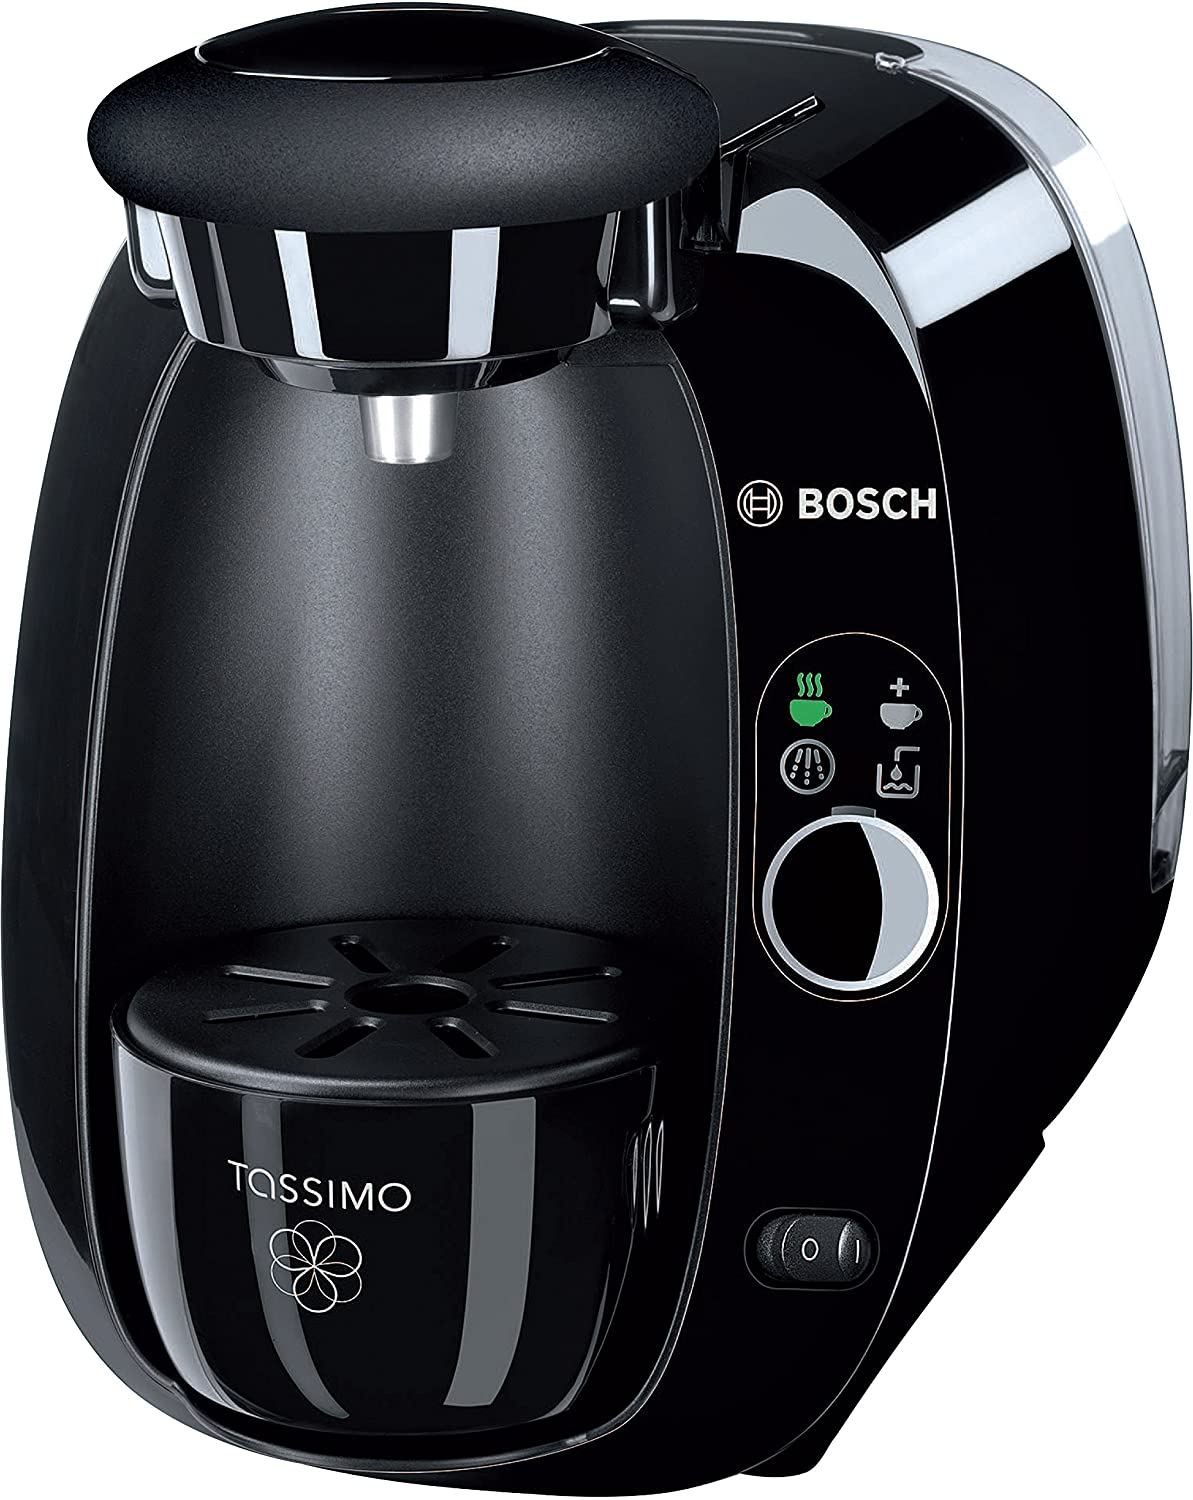 bosch tassimo t20 amia hot beverage coffee espresso maker machine tas2002gb new ebay. Black Bedroom Furniture Sets. Home Design Ideas